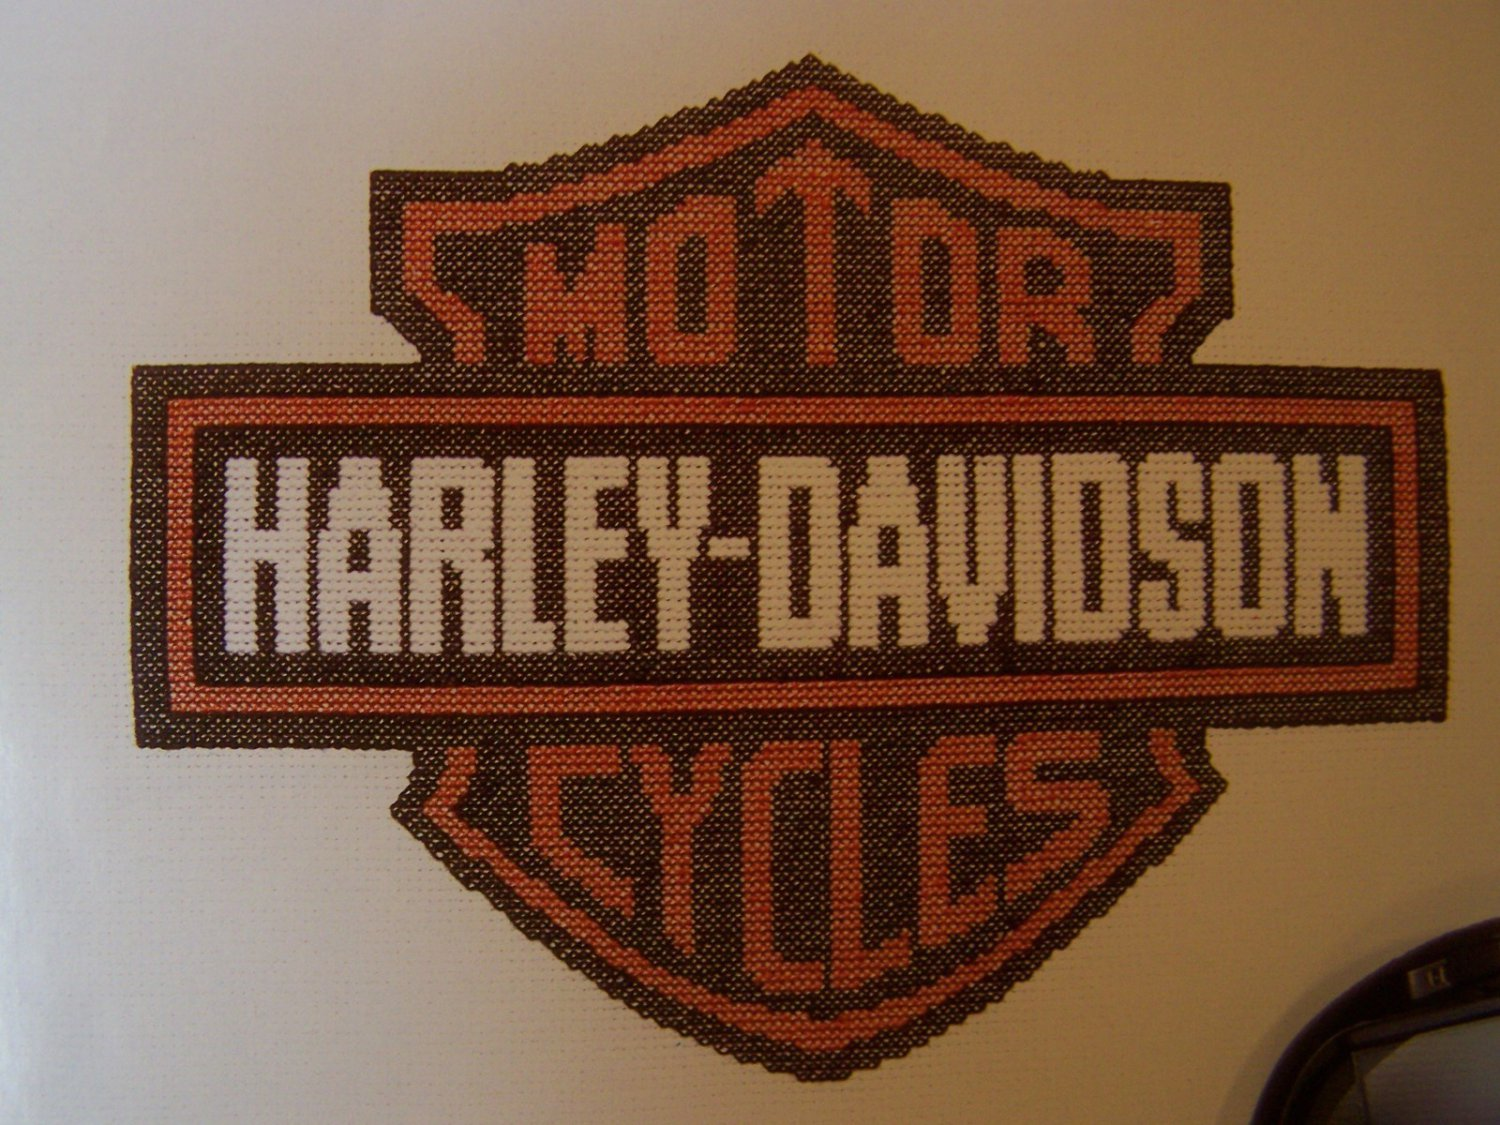 Harley Davidson Motor cycles Cross Stitch Pattern and 2 floss Skeins